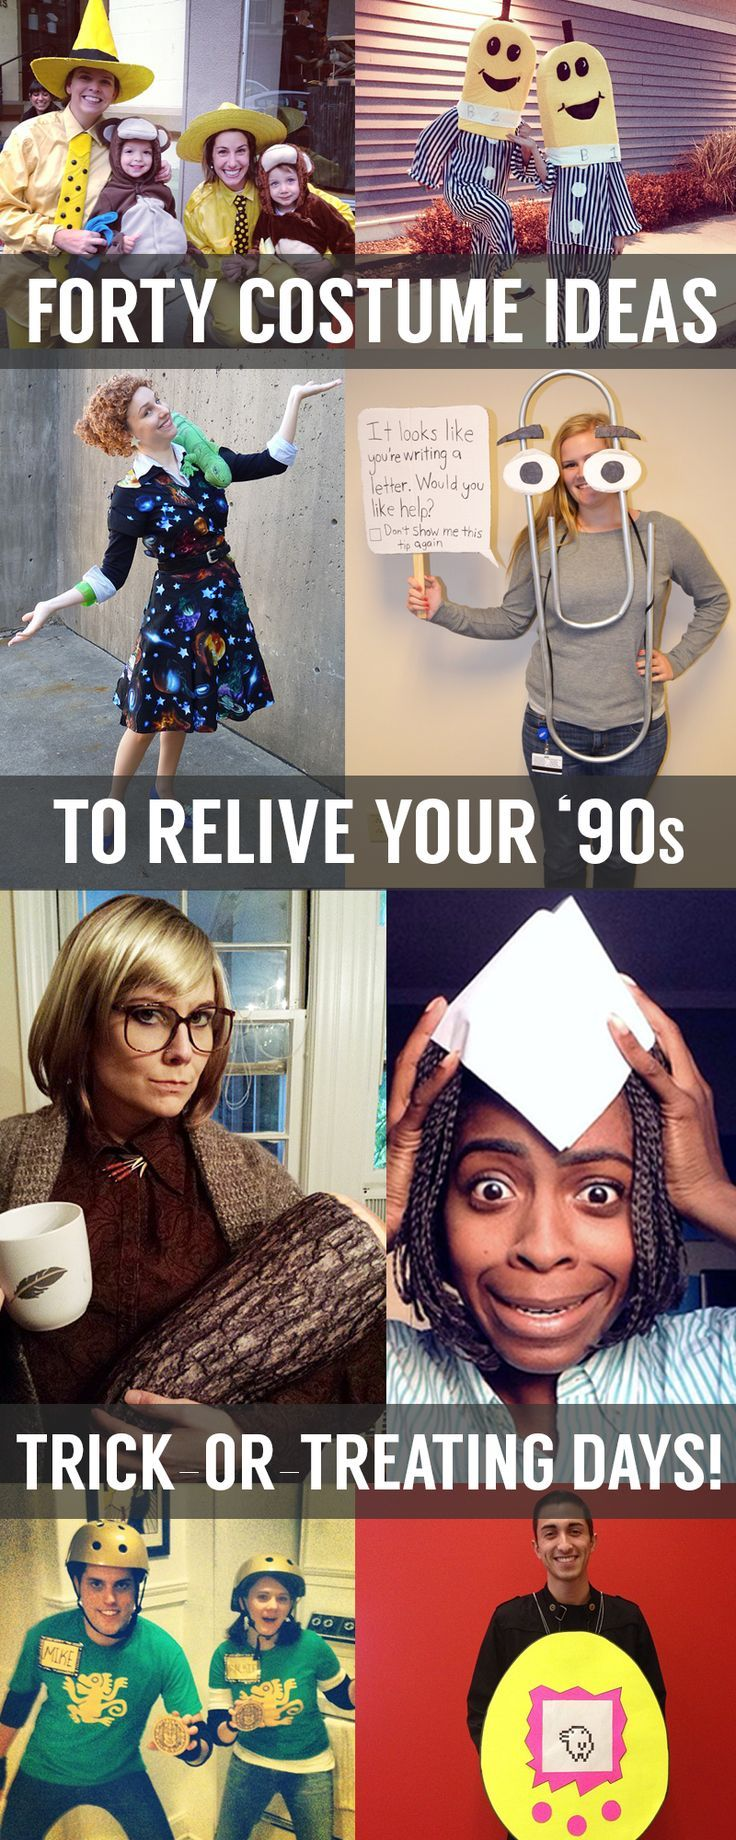 '90s fans, here are Halloween costume ideas just for you!